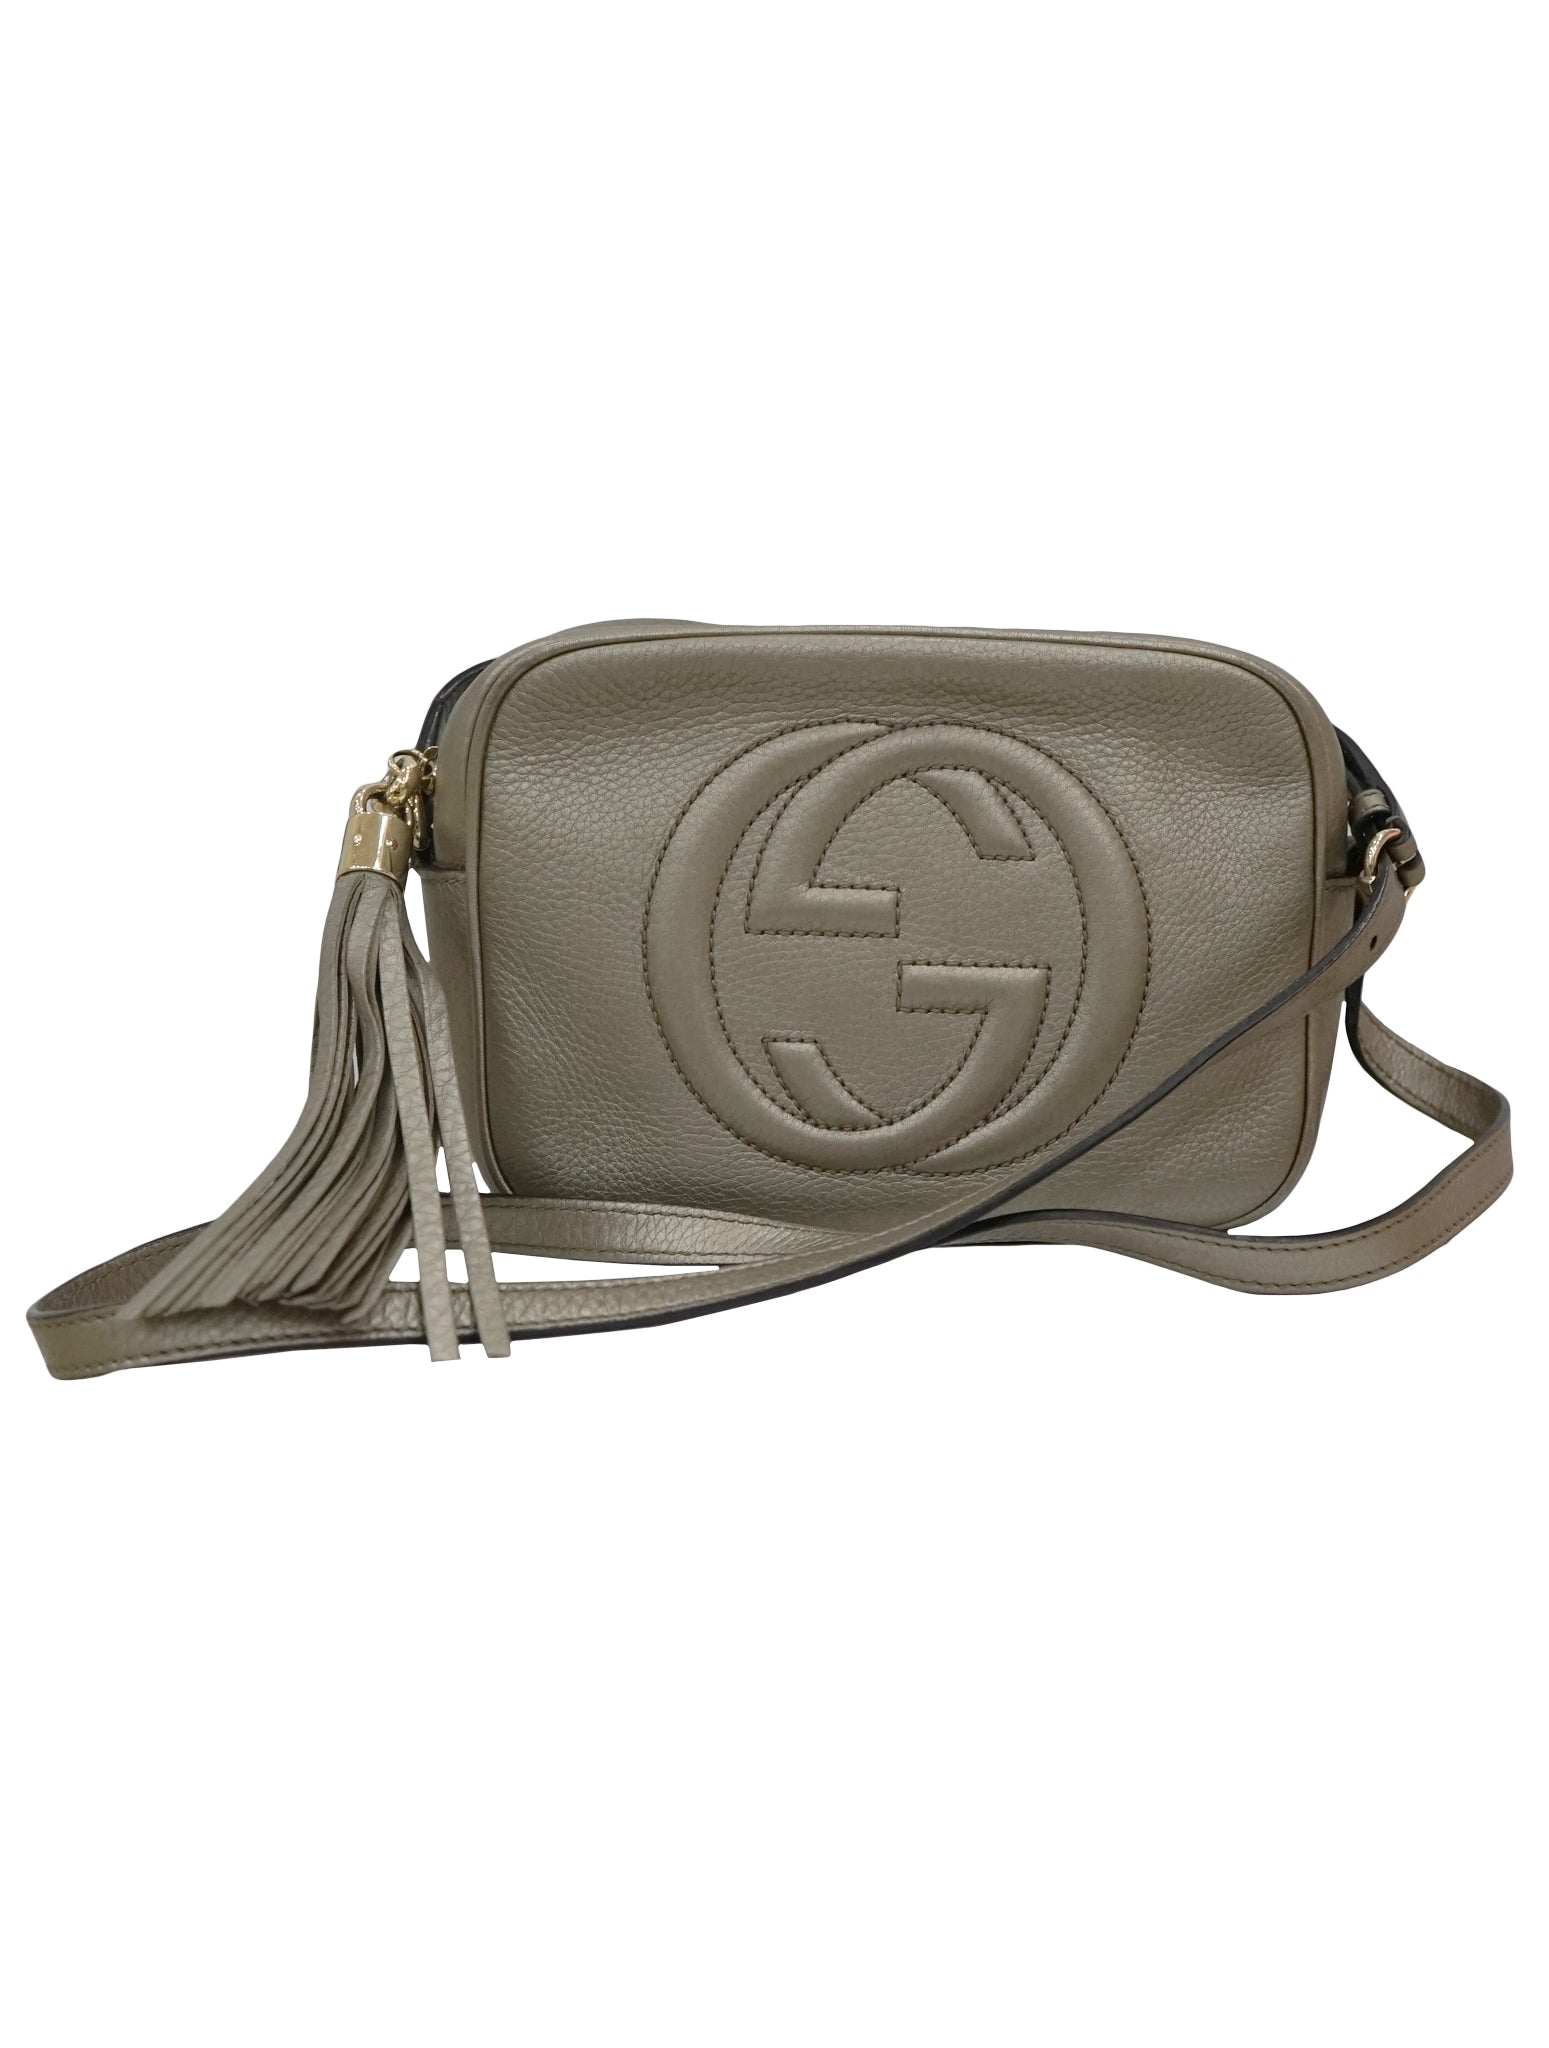 Gucci Soho Small Leather Disco Bag Kidsstyleforless